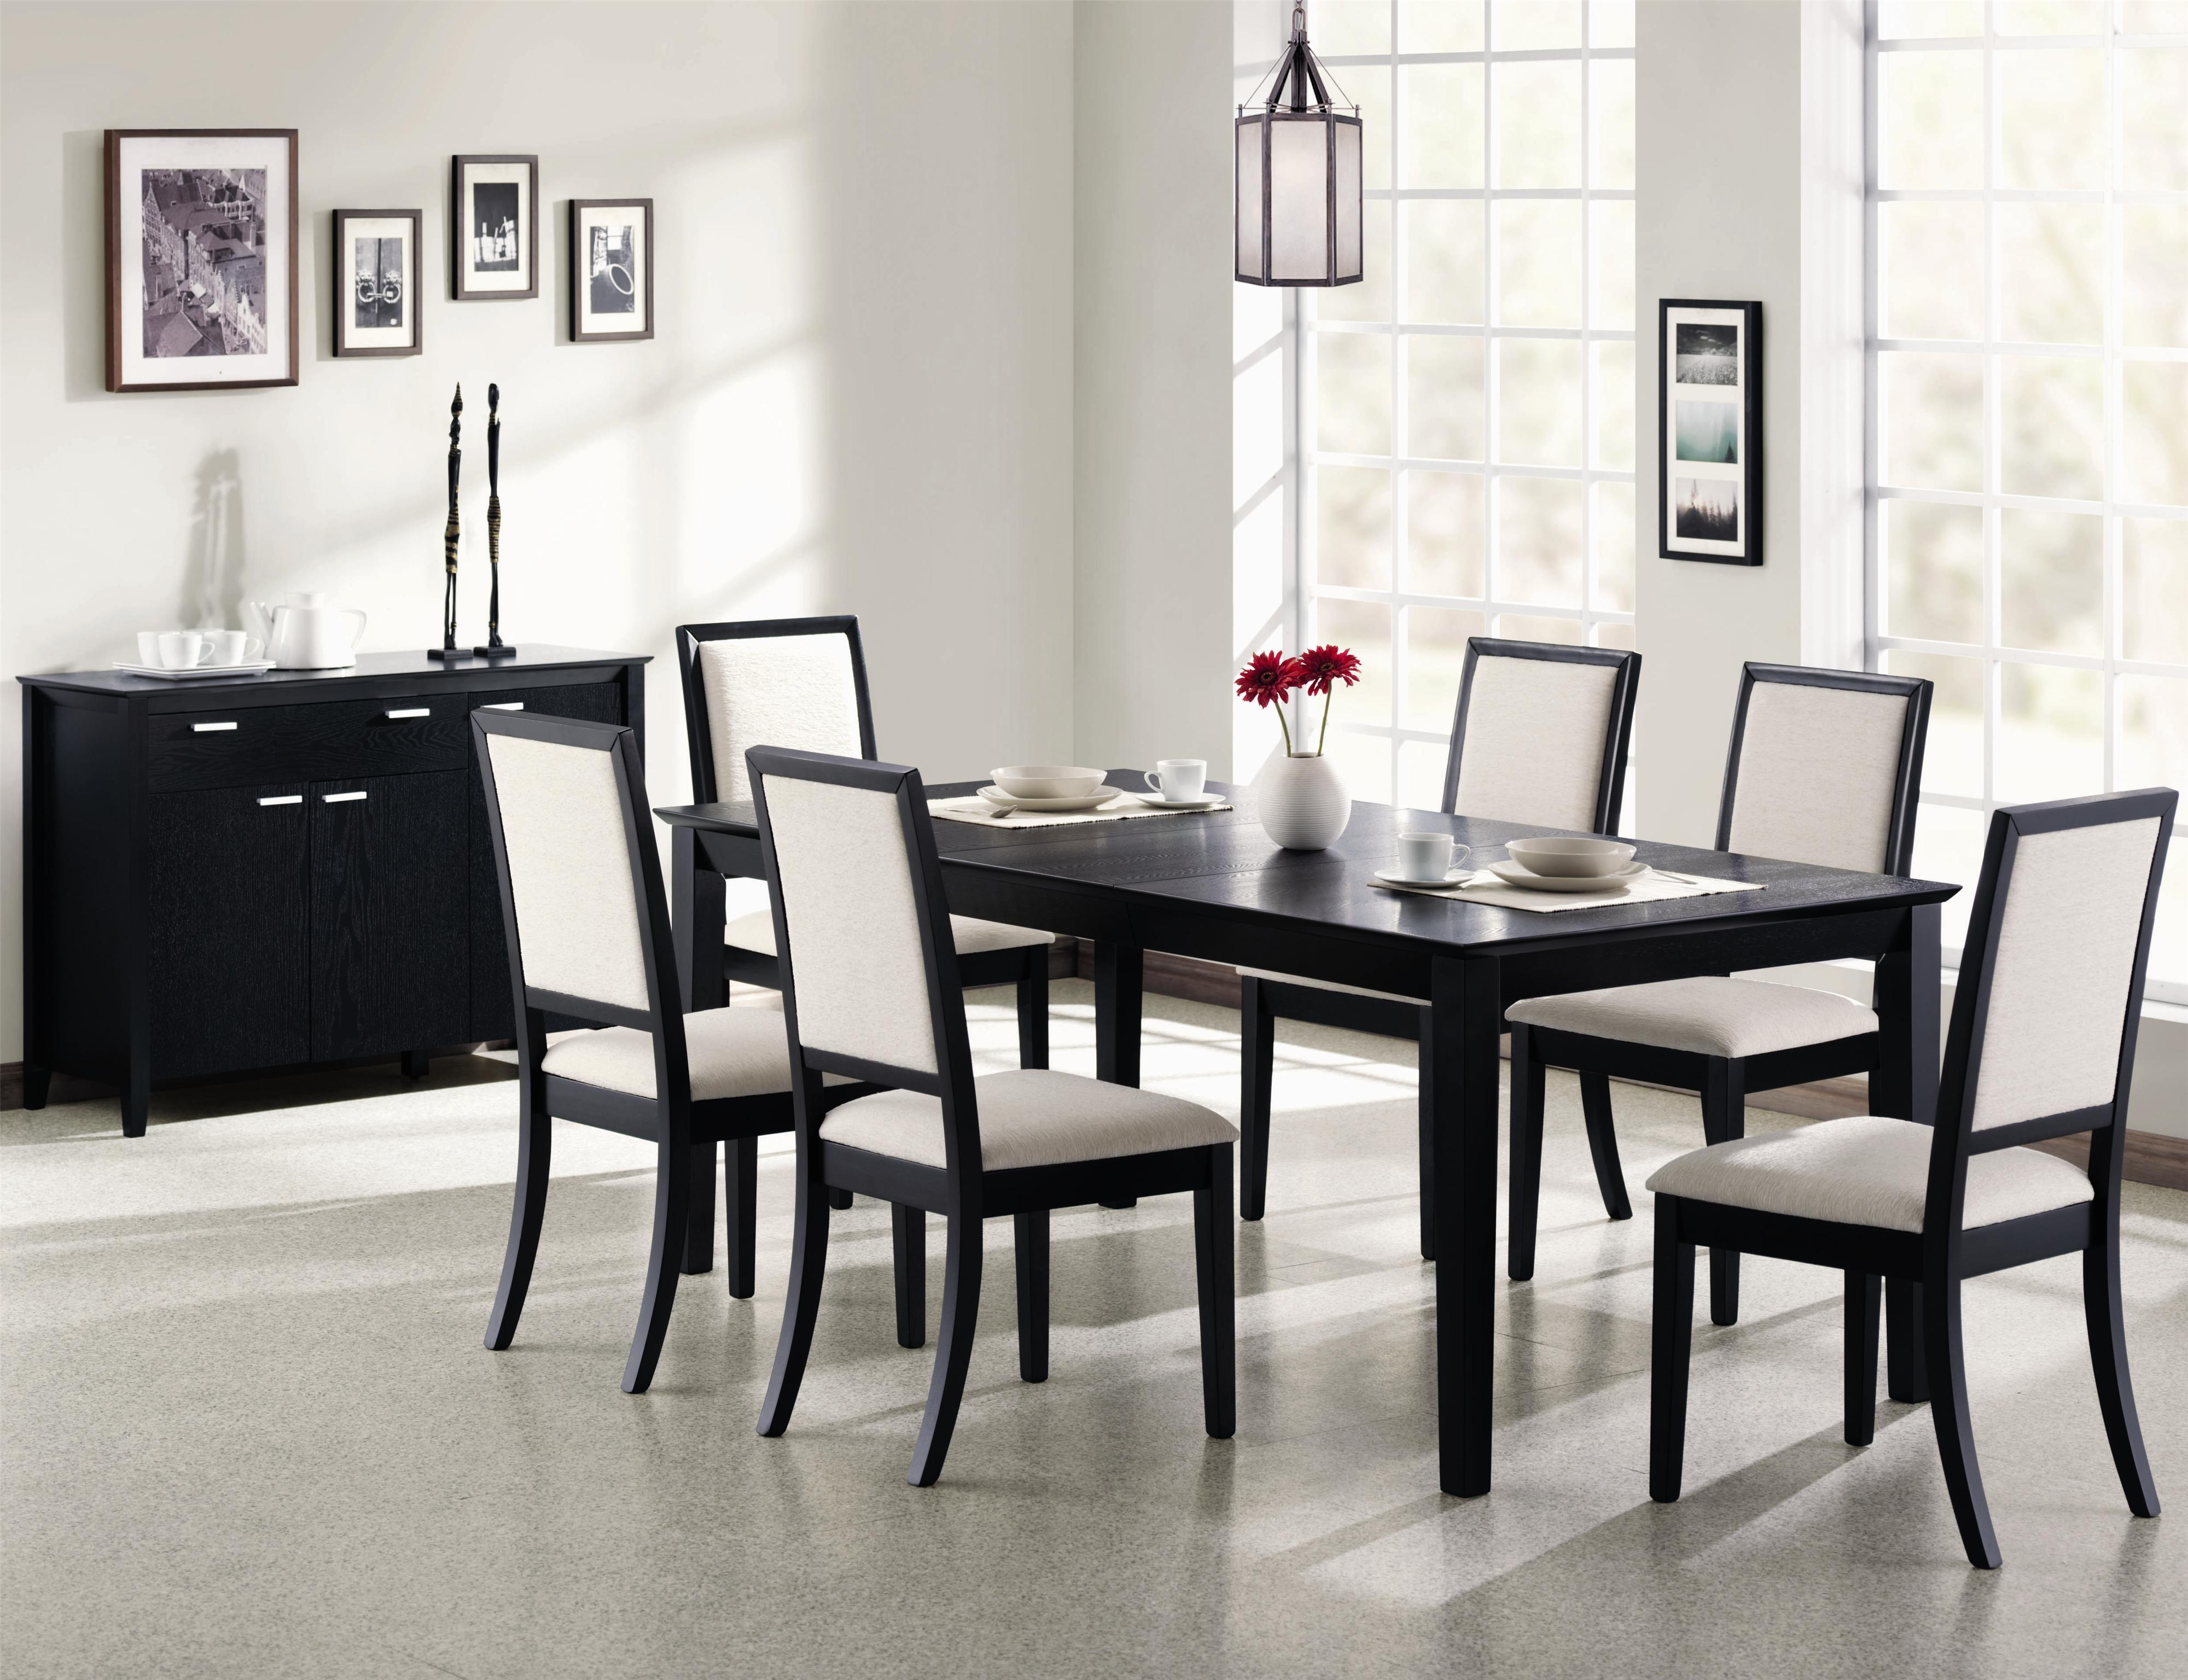 Black dining table and chairs - Black Dining Table And Chairs 8